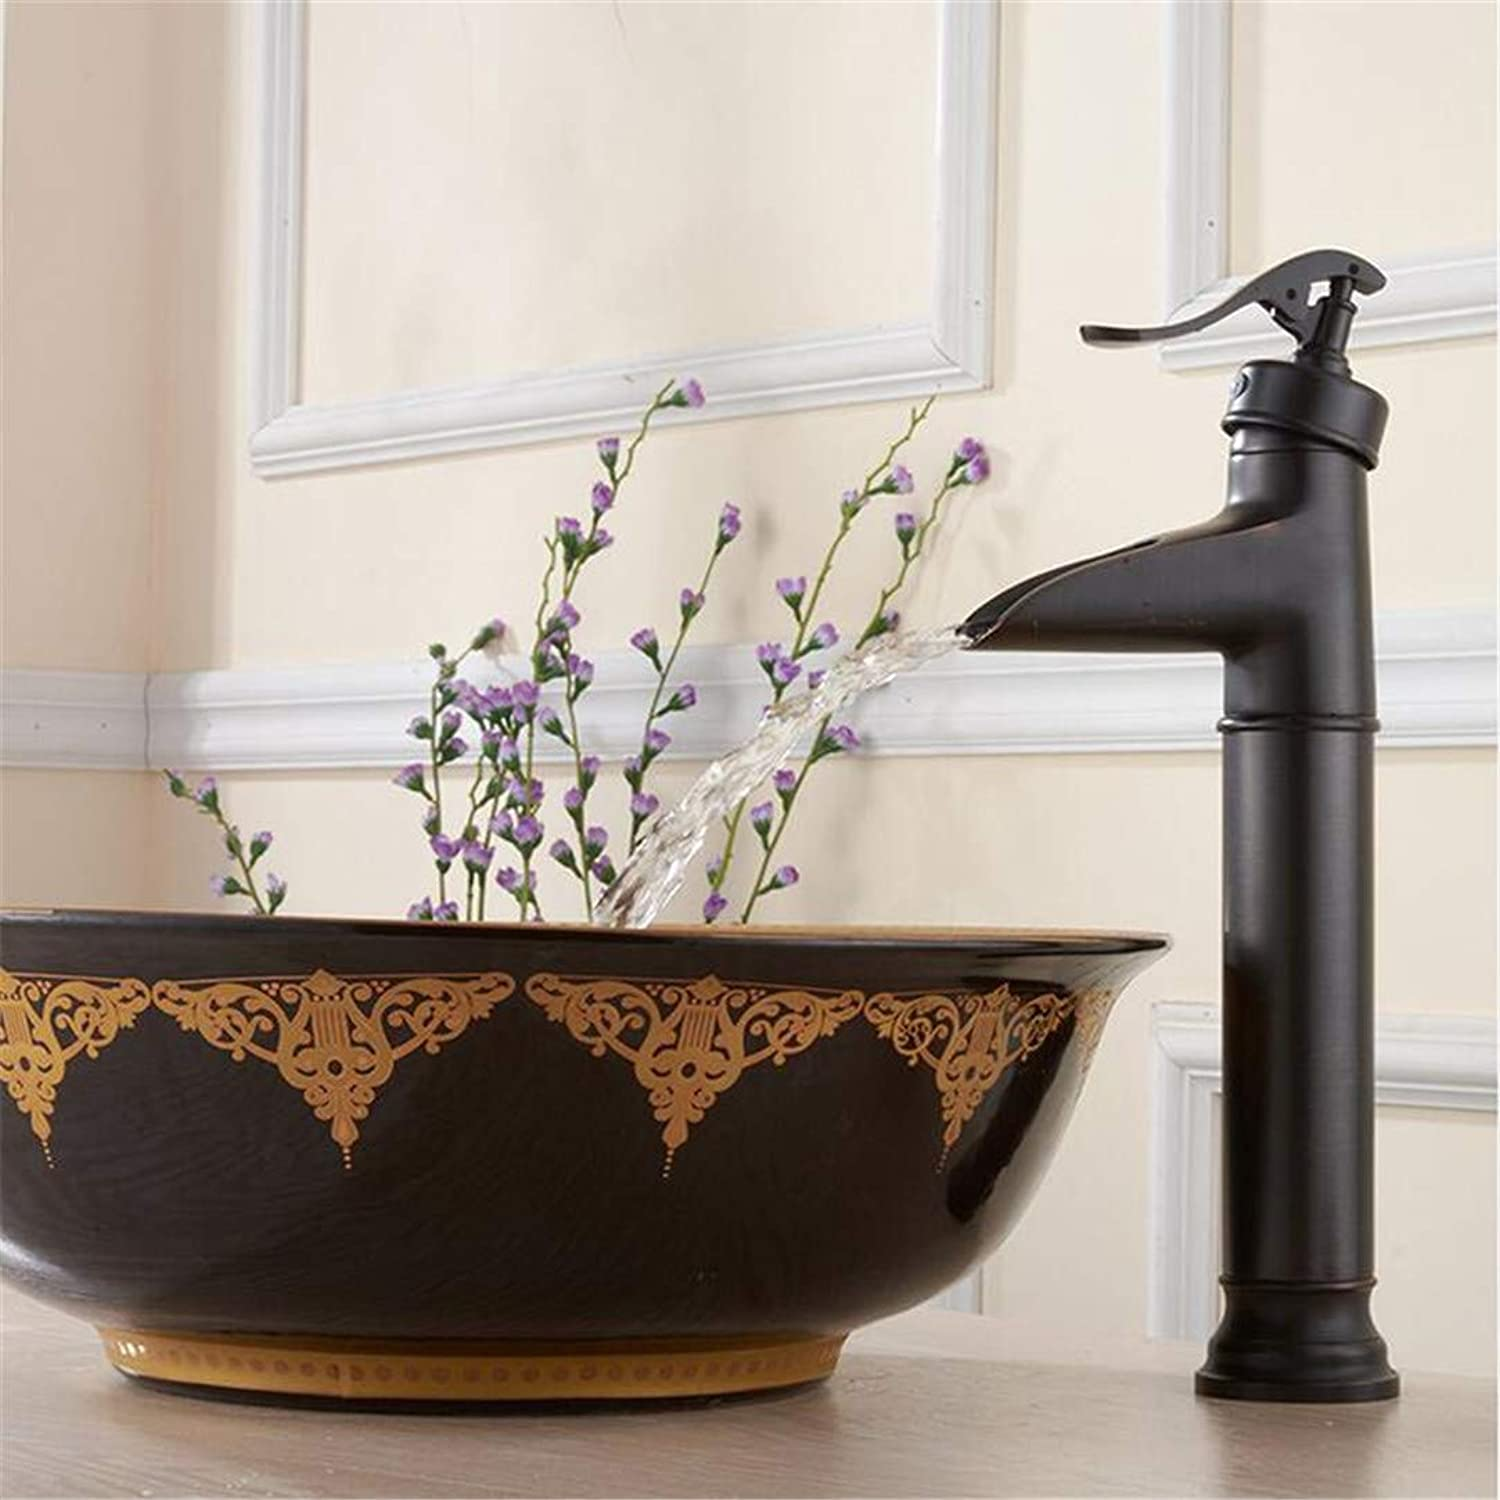 Faucets Basin Mixer Oil Rubbed Black Basin Faucet Brass Vessel Sink Faucet Hot and Cold Mixer Tap Bathroom Waterfall Faucet